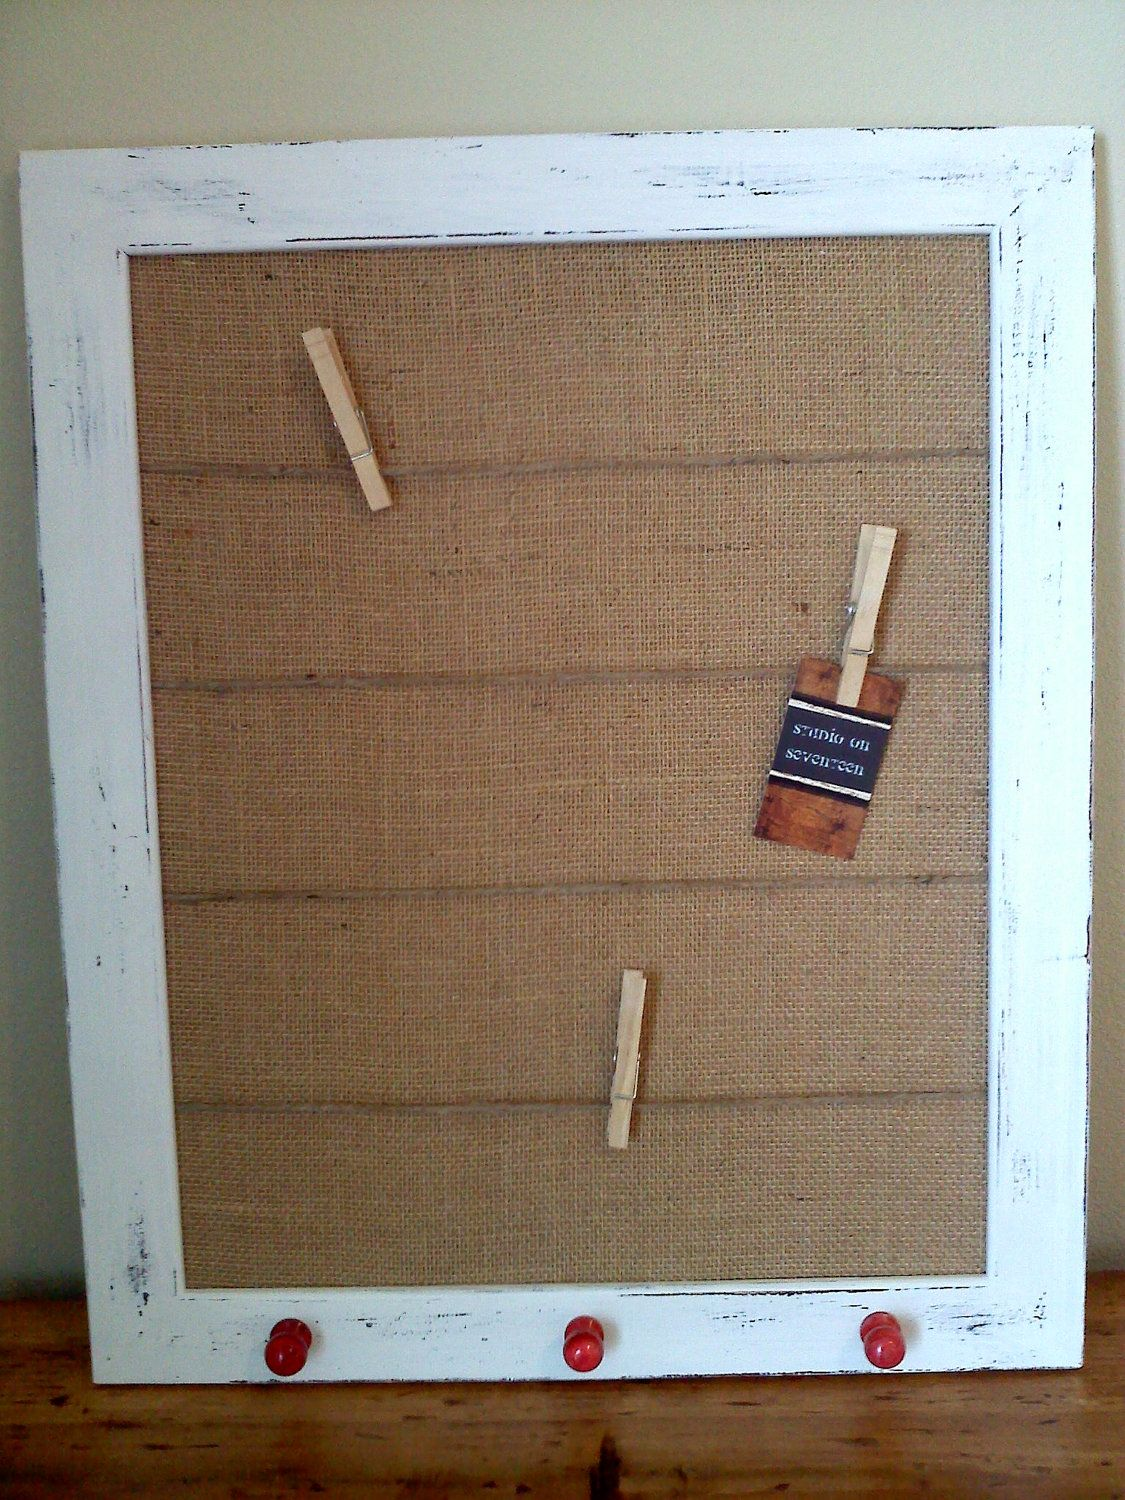 Distressed White Frame - Tan Burlap Covered Cork Board - Red knobs ...